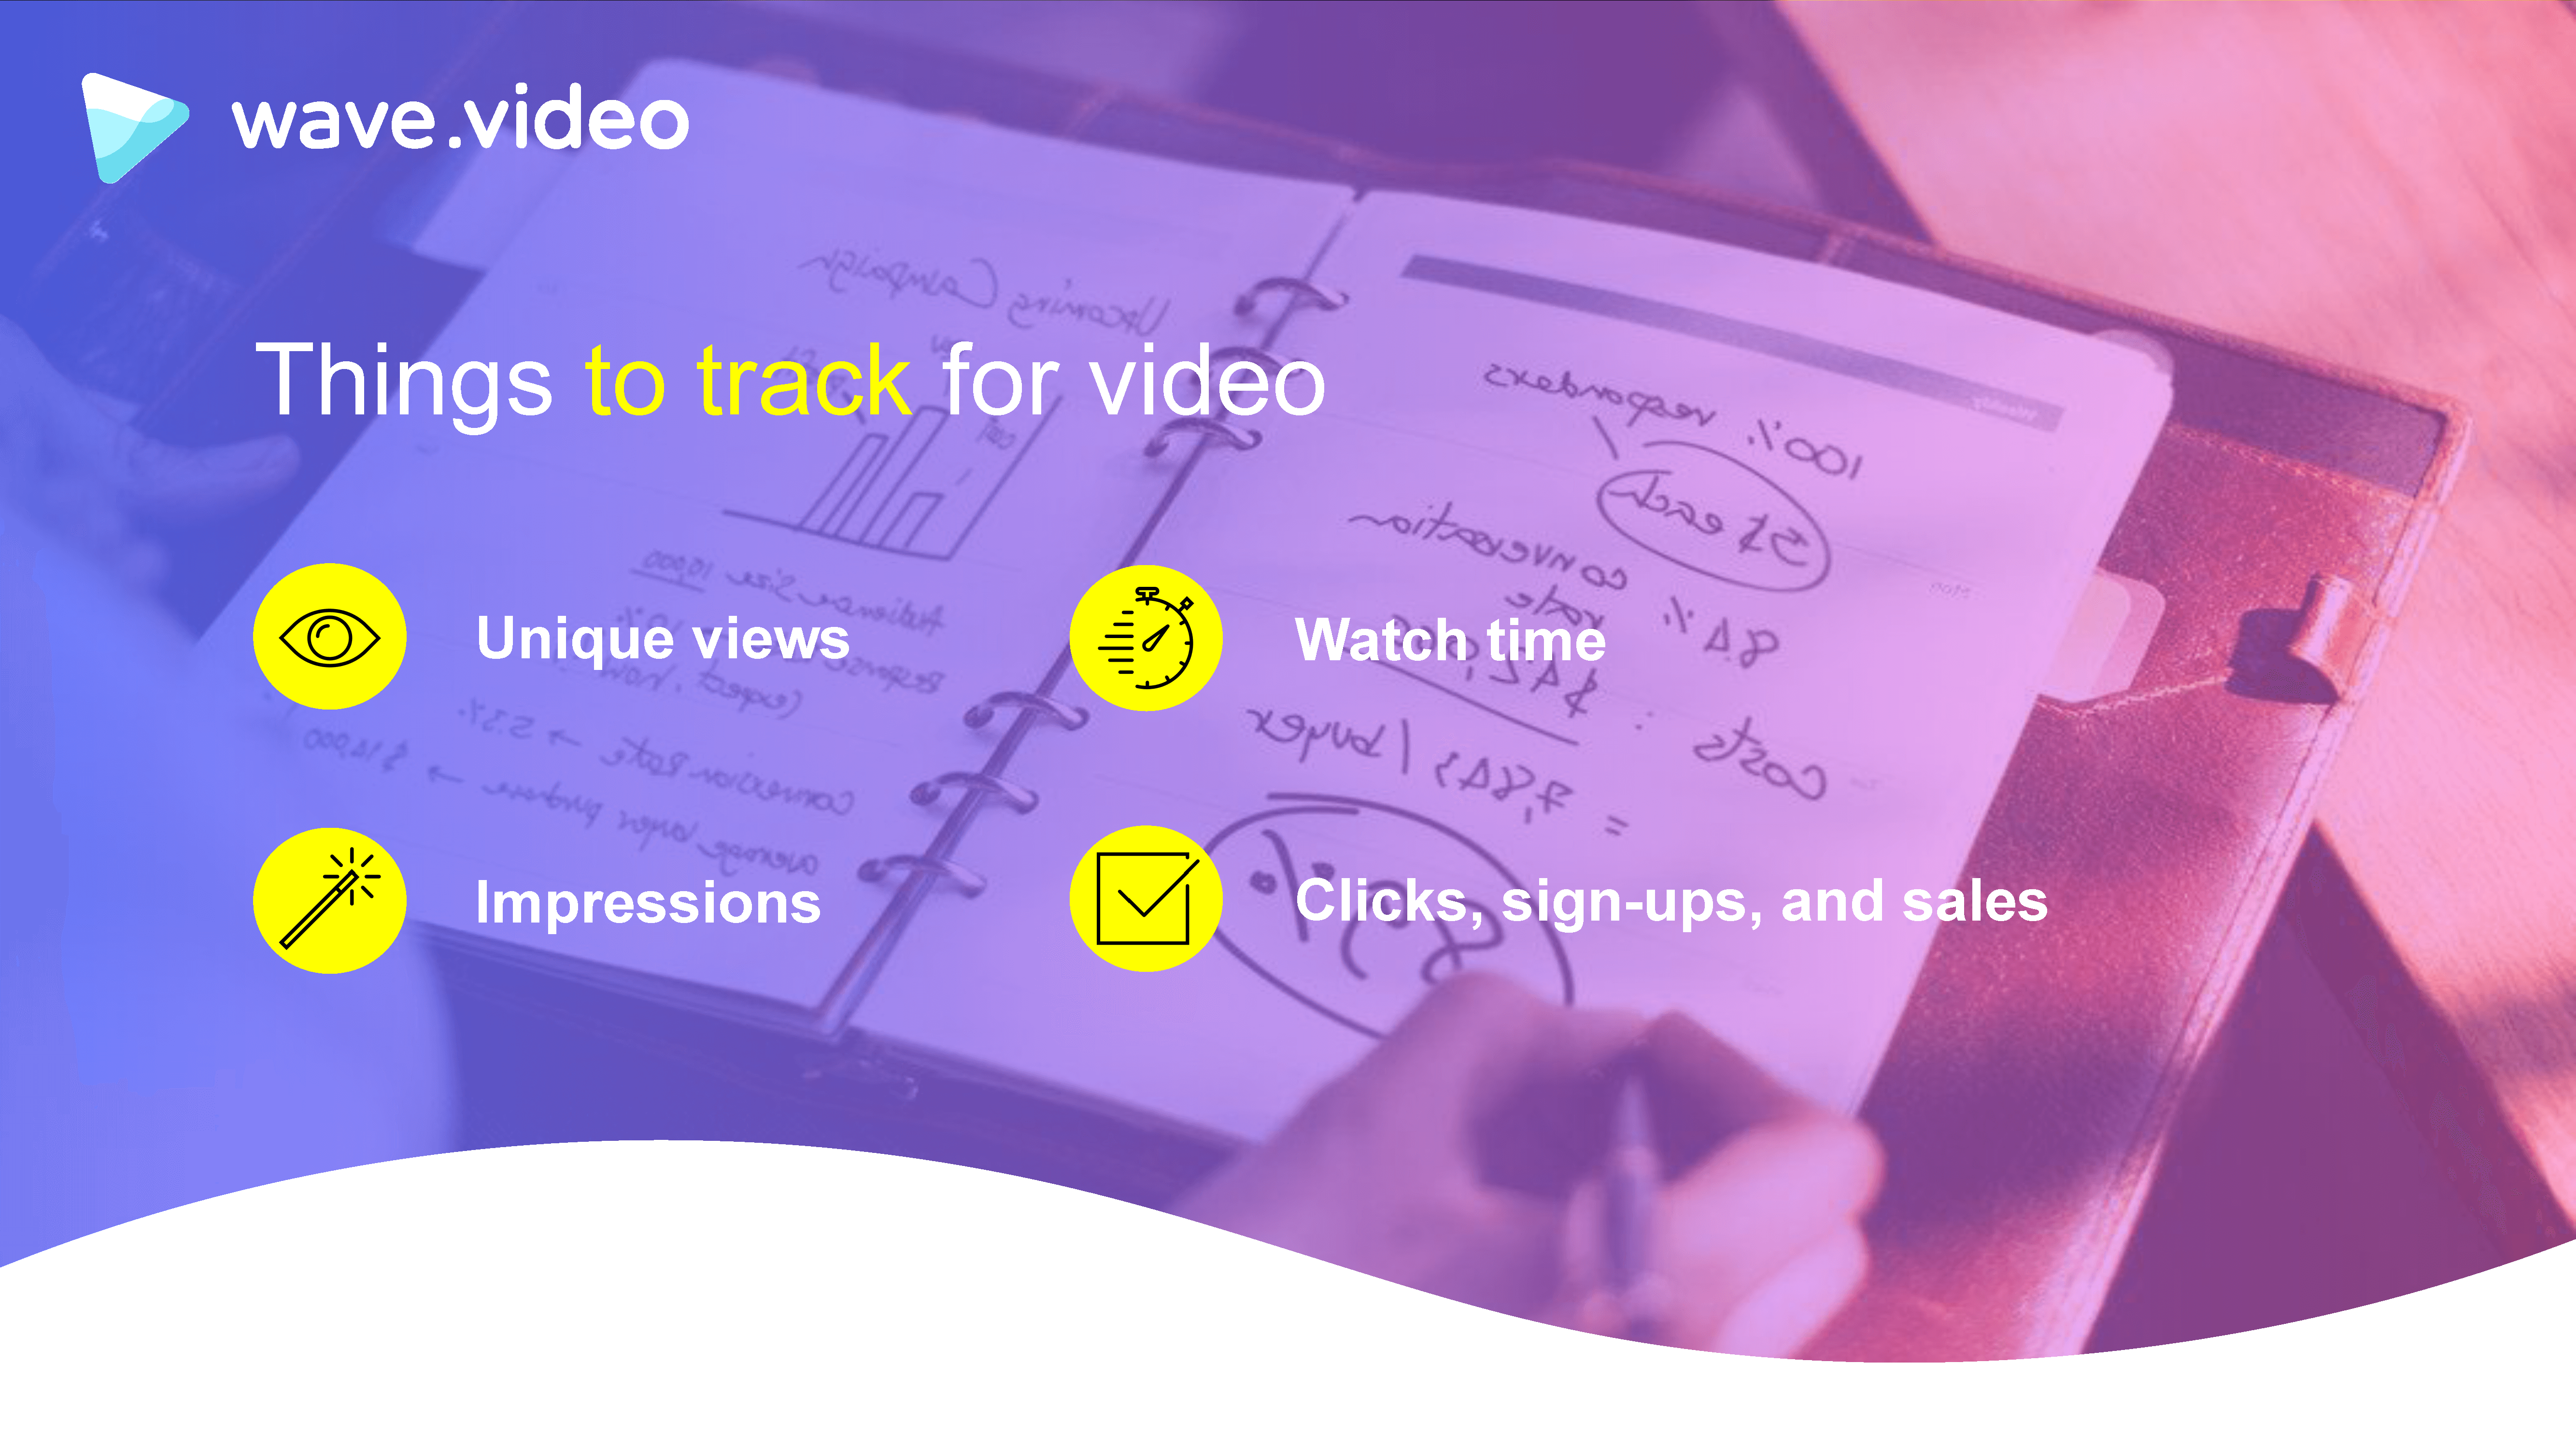 KPIs for video